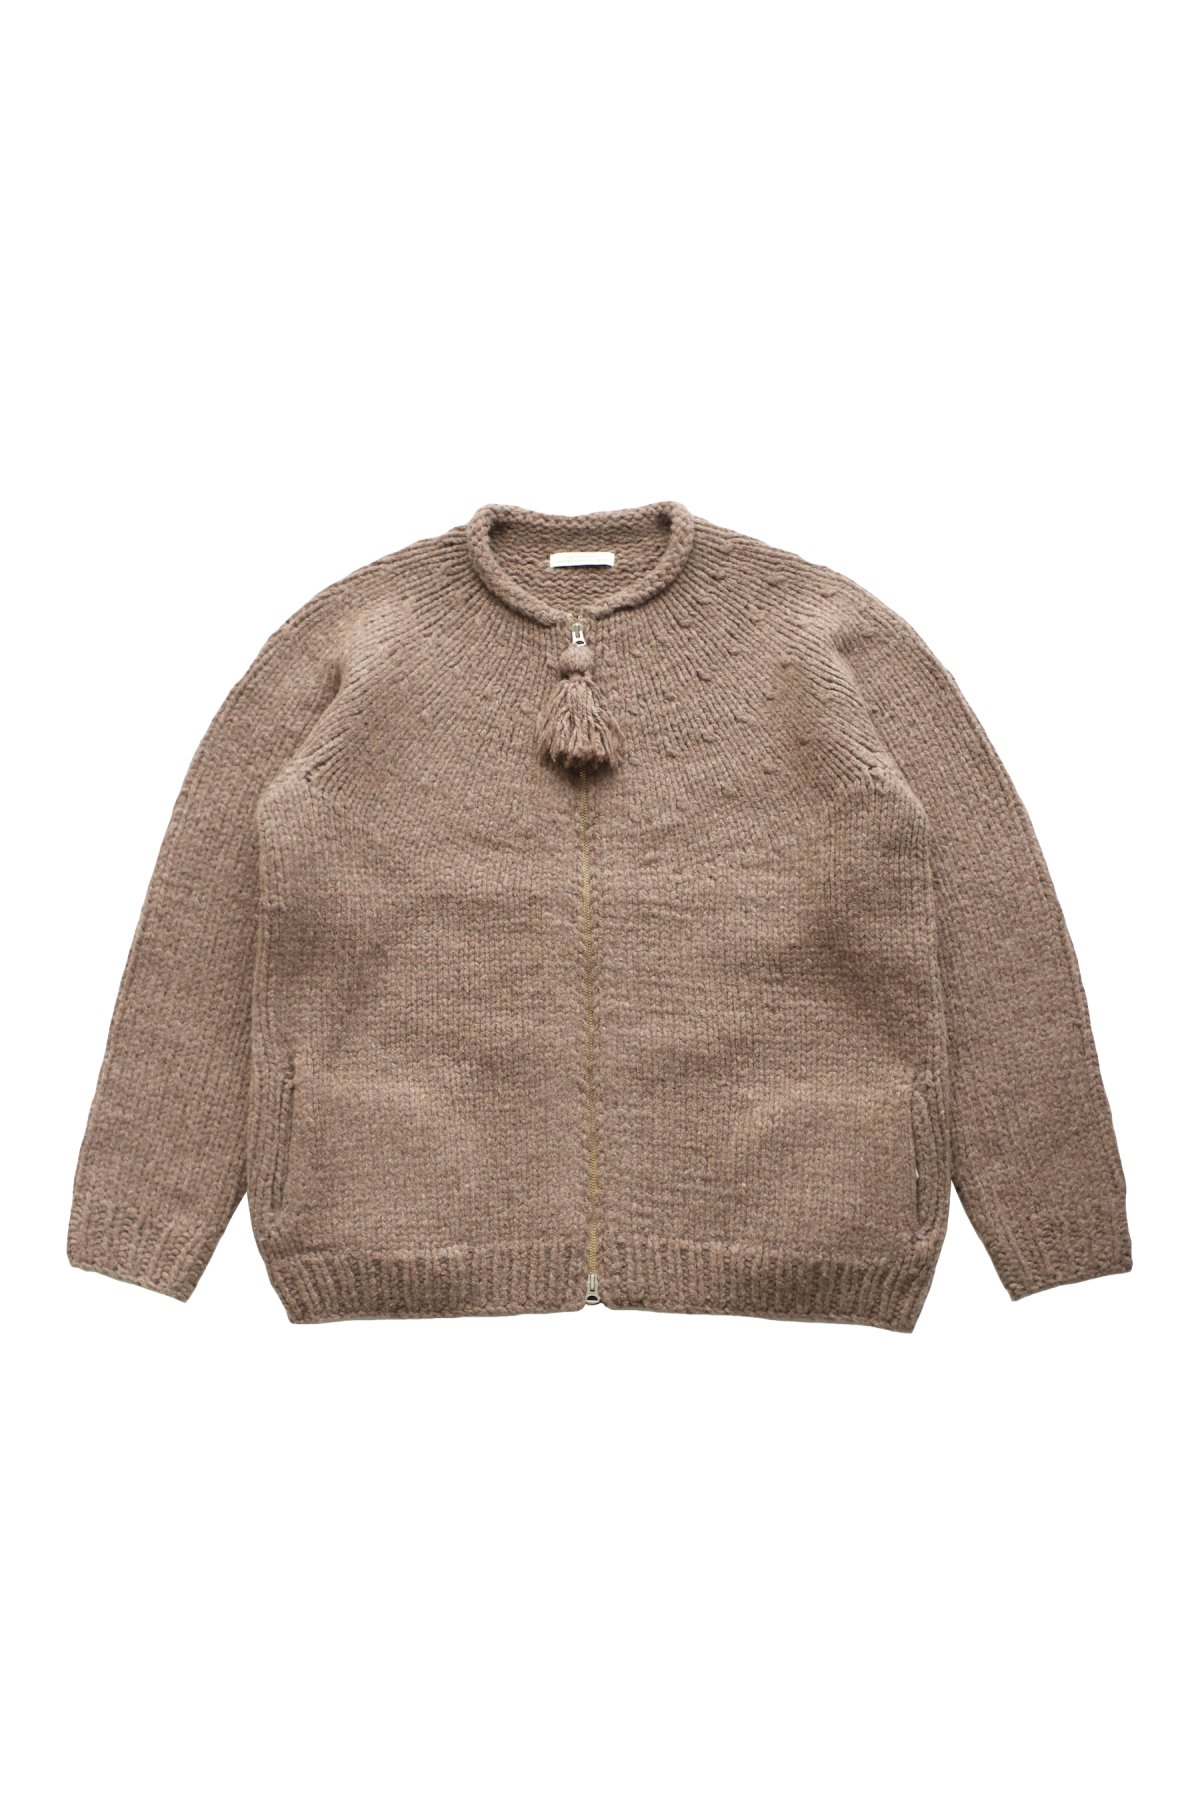 KNIT - OLD JOE - ZIP UP CREW-NECK COWCHAIN - MINK - PRICE 85,800 tax-in